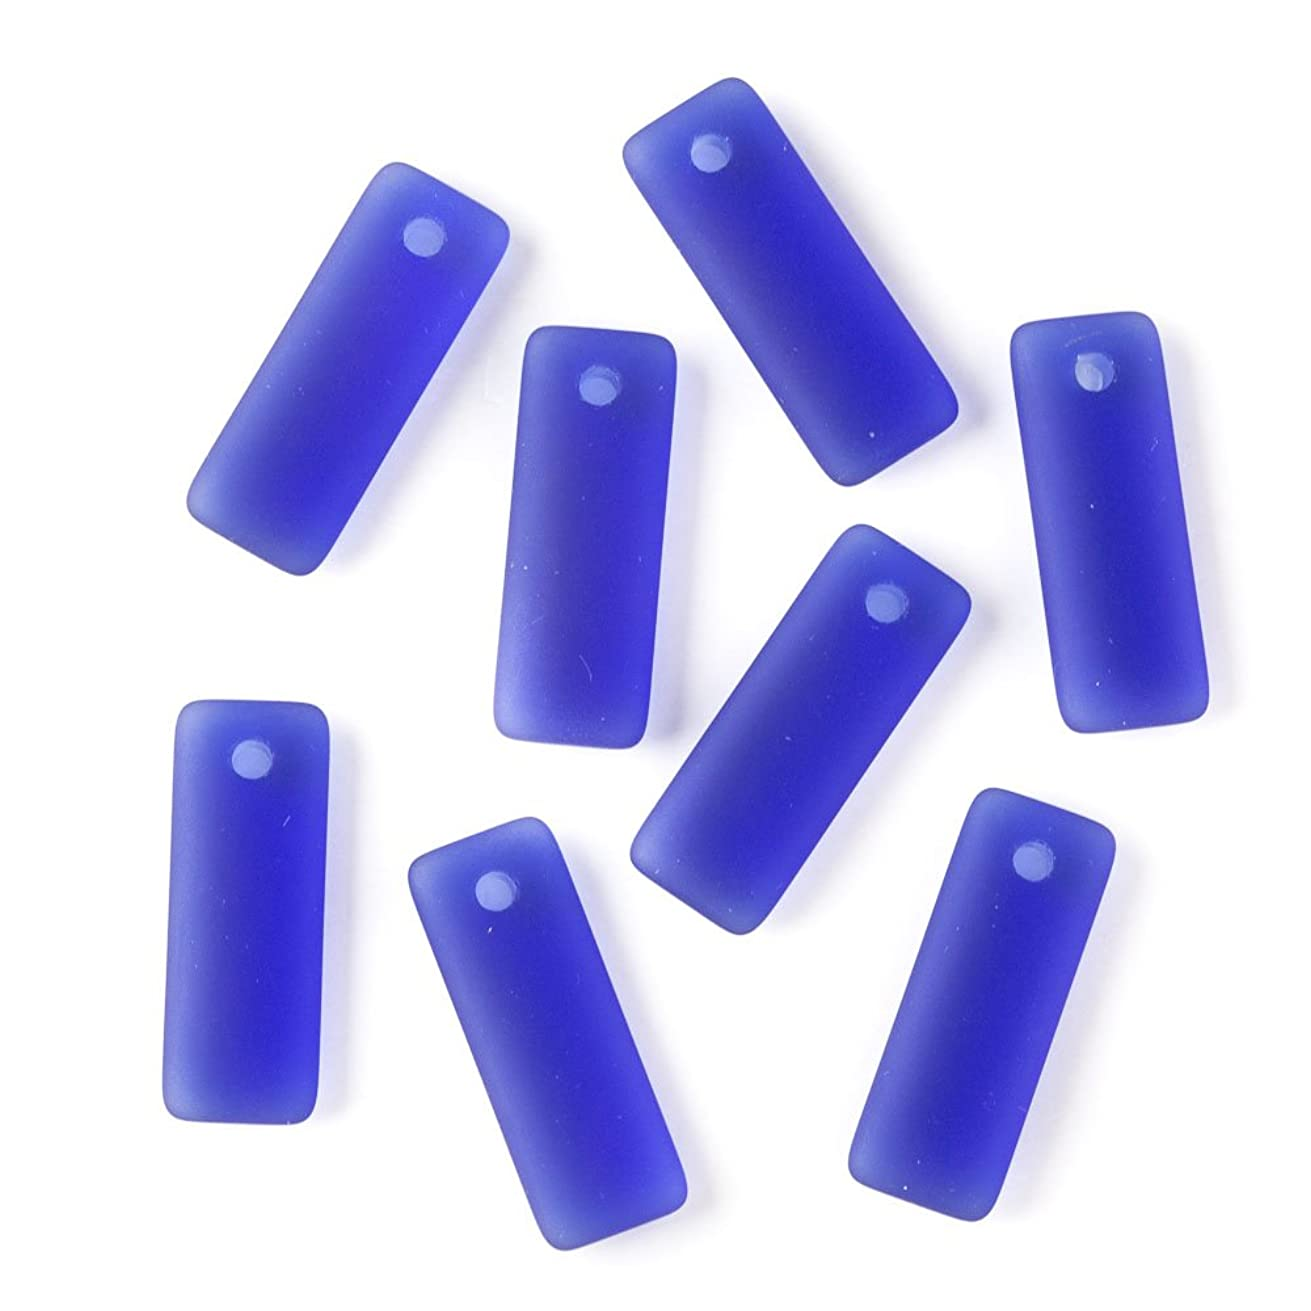 Cherry Blossom Beads Top Drilled Royal Blue Cultured Sea Glass 12x32mm Rectangle Pendants - 8 Per Bag